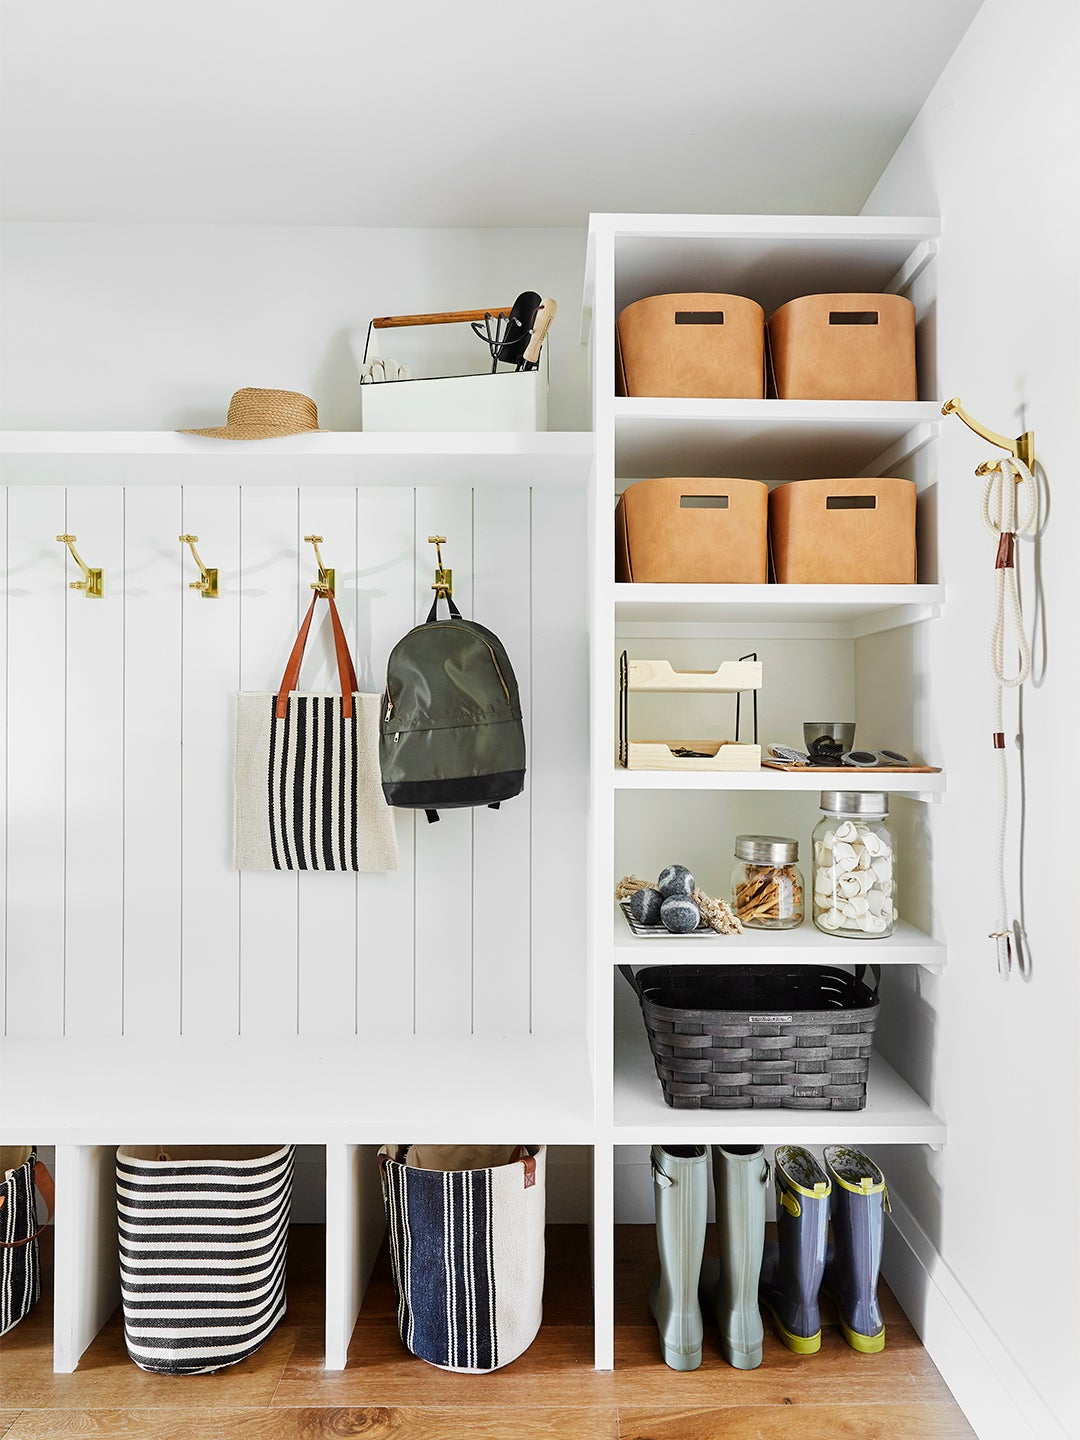 laundry room with backpacks on walls